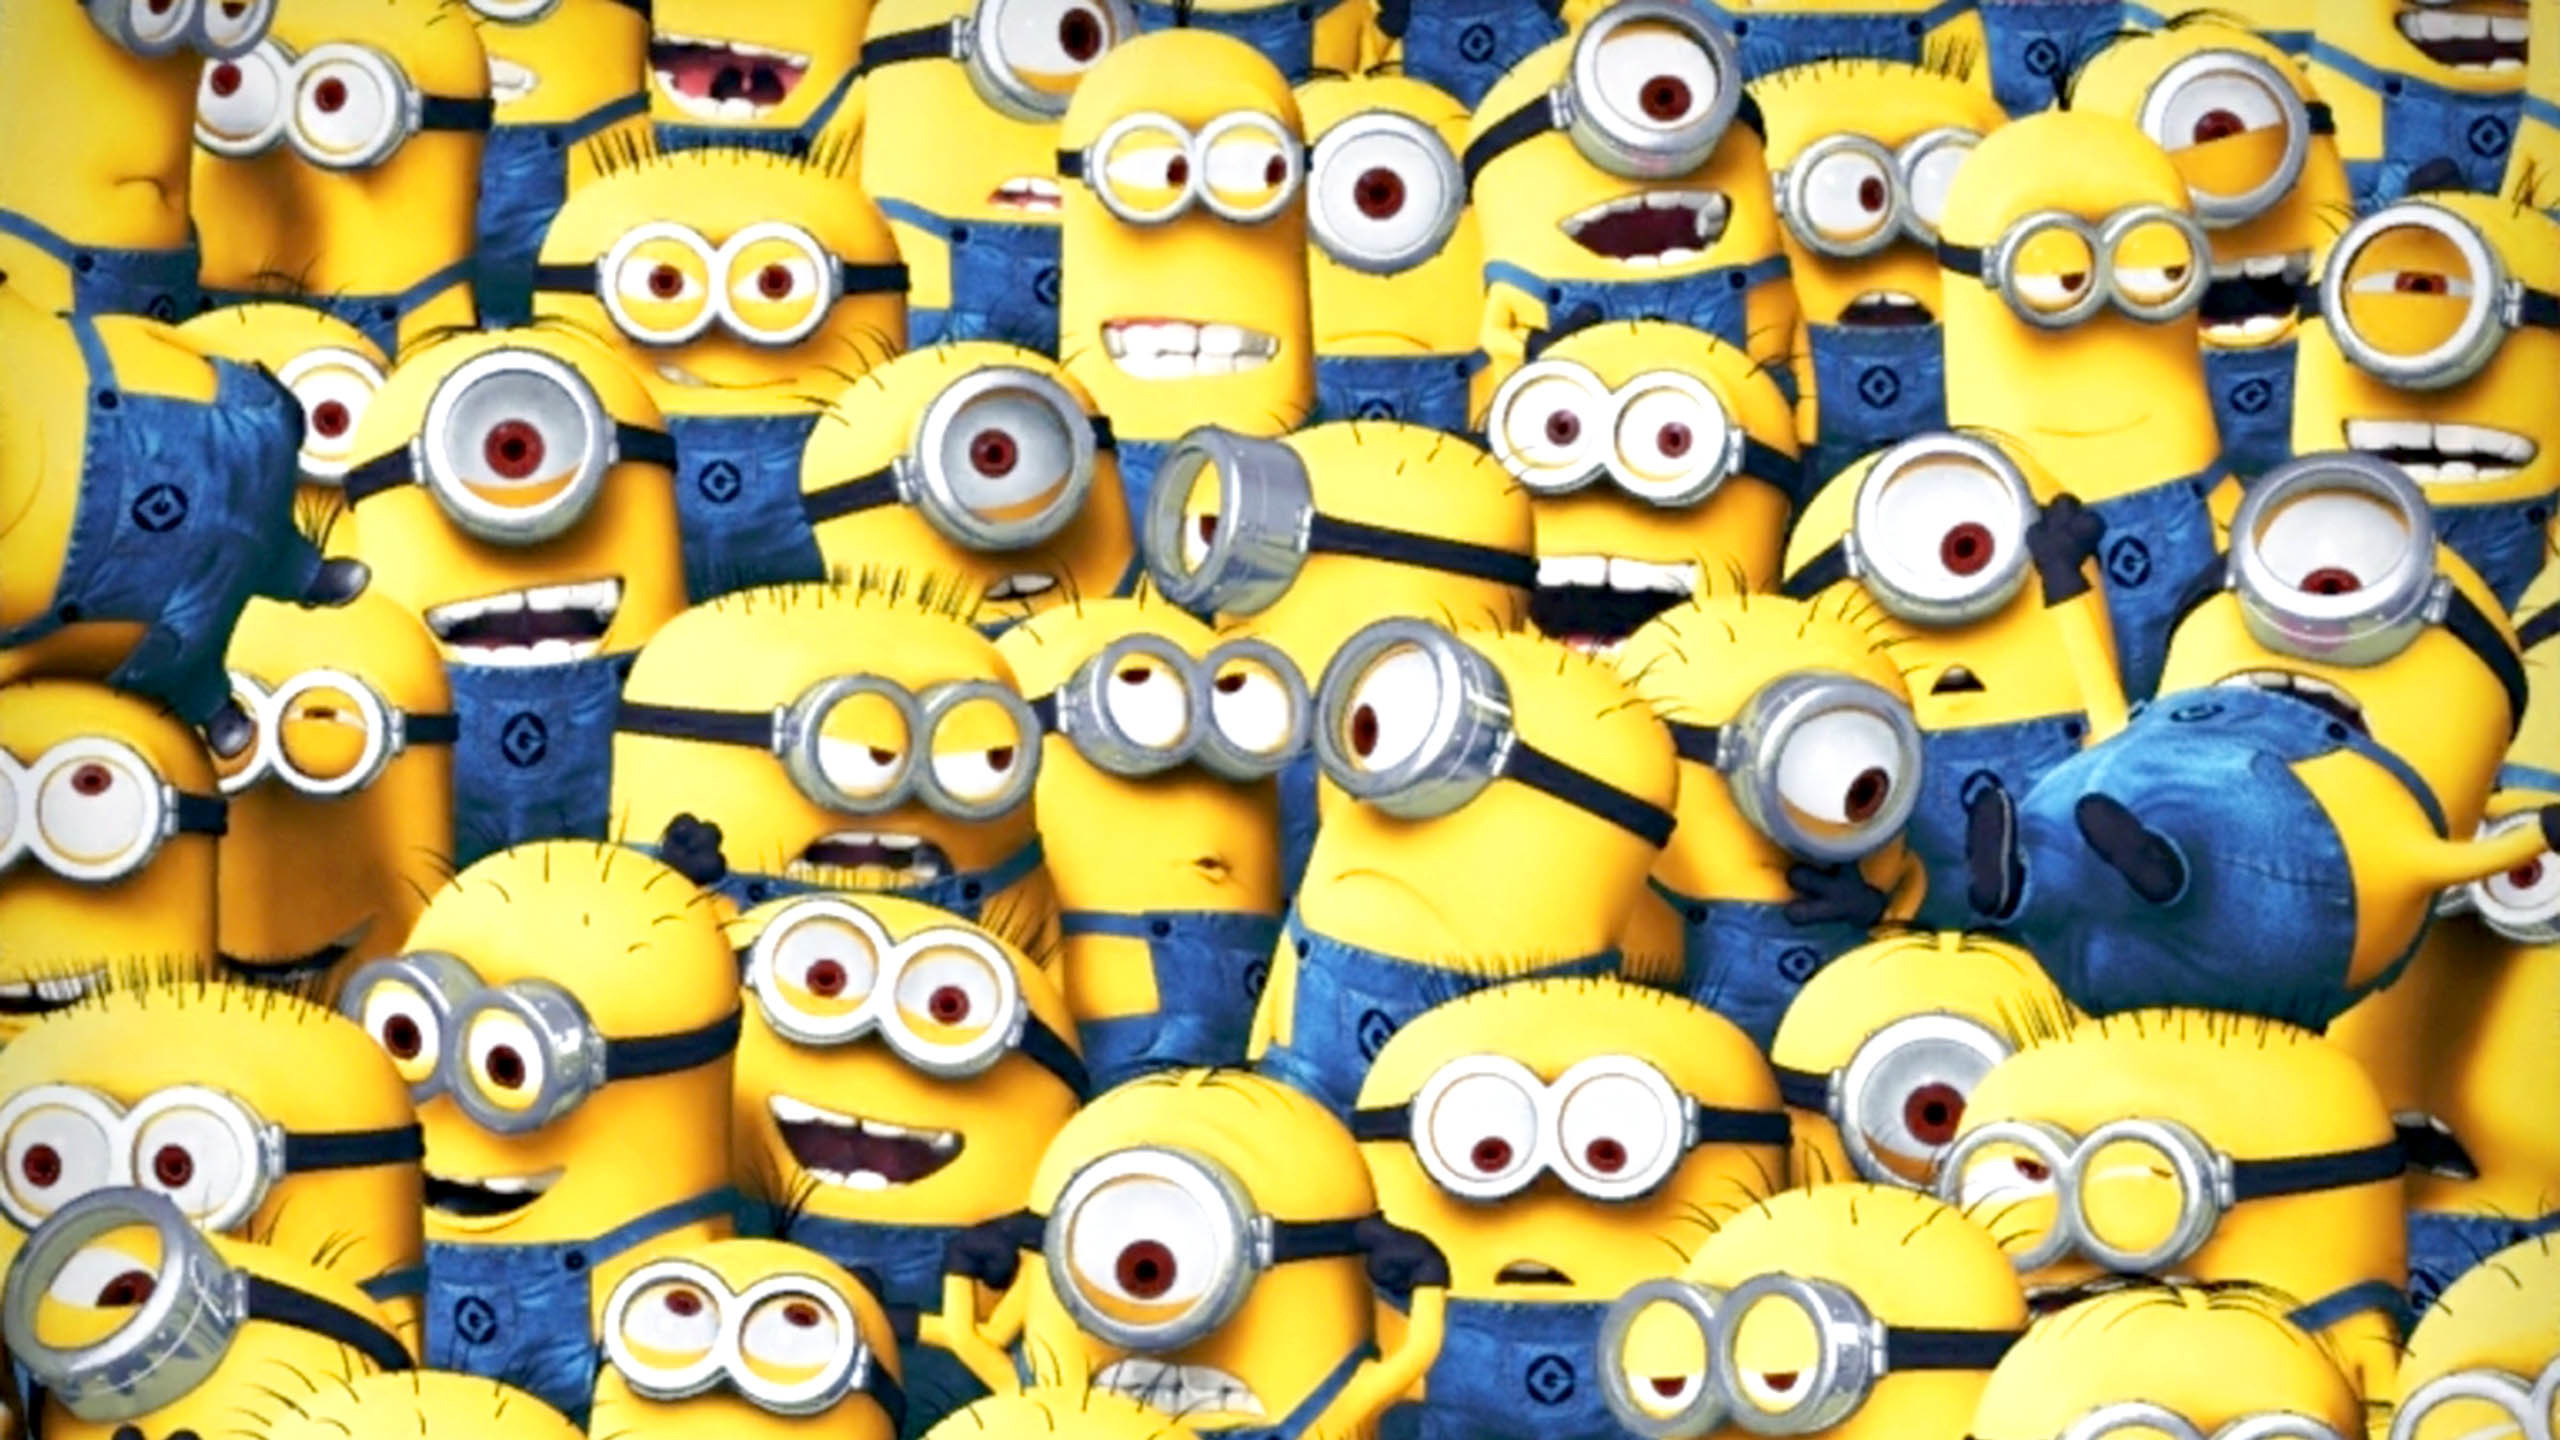 62 Minion Wallpaper Backgrounds